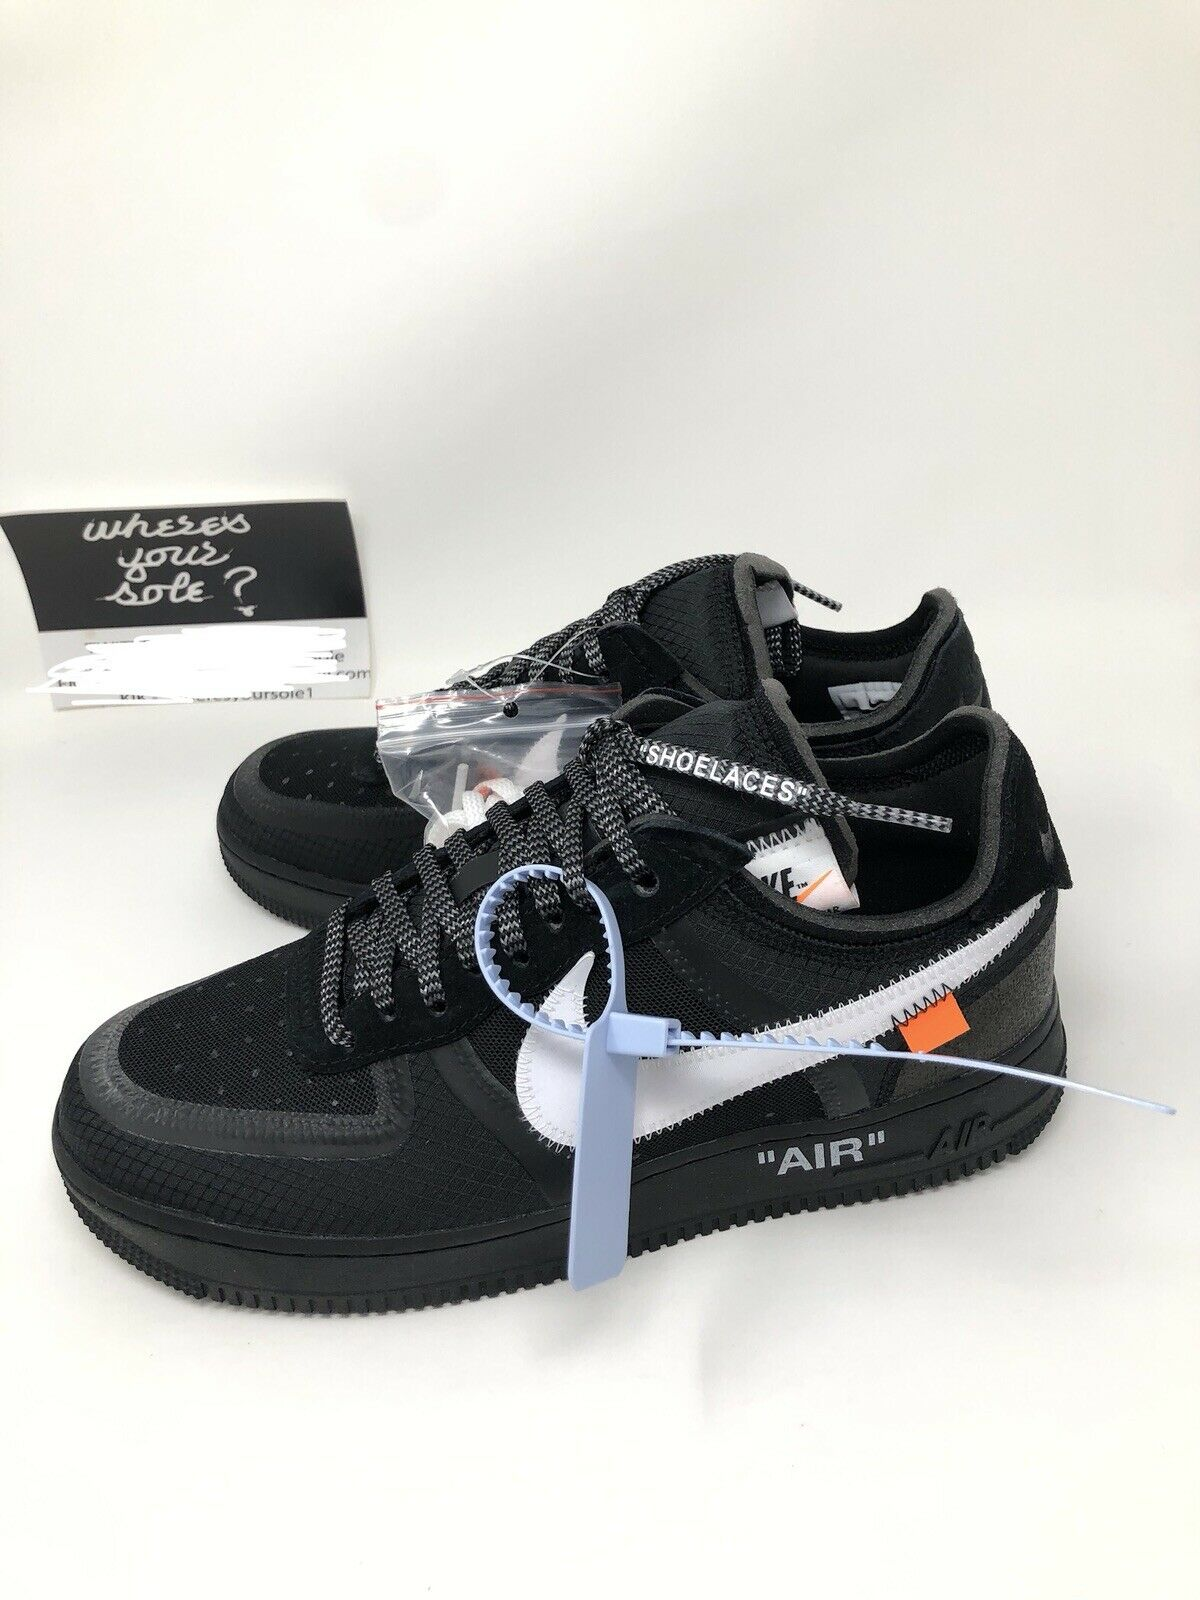 Nike Off White The Ten  Air Force 1 Low Black size 8 New DS A04606-001 Virgil